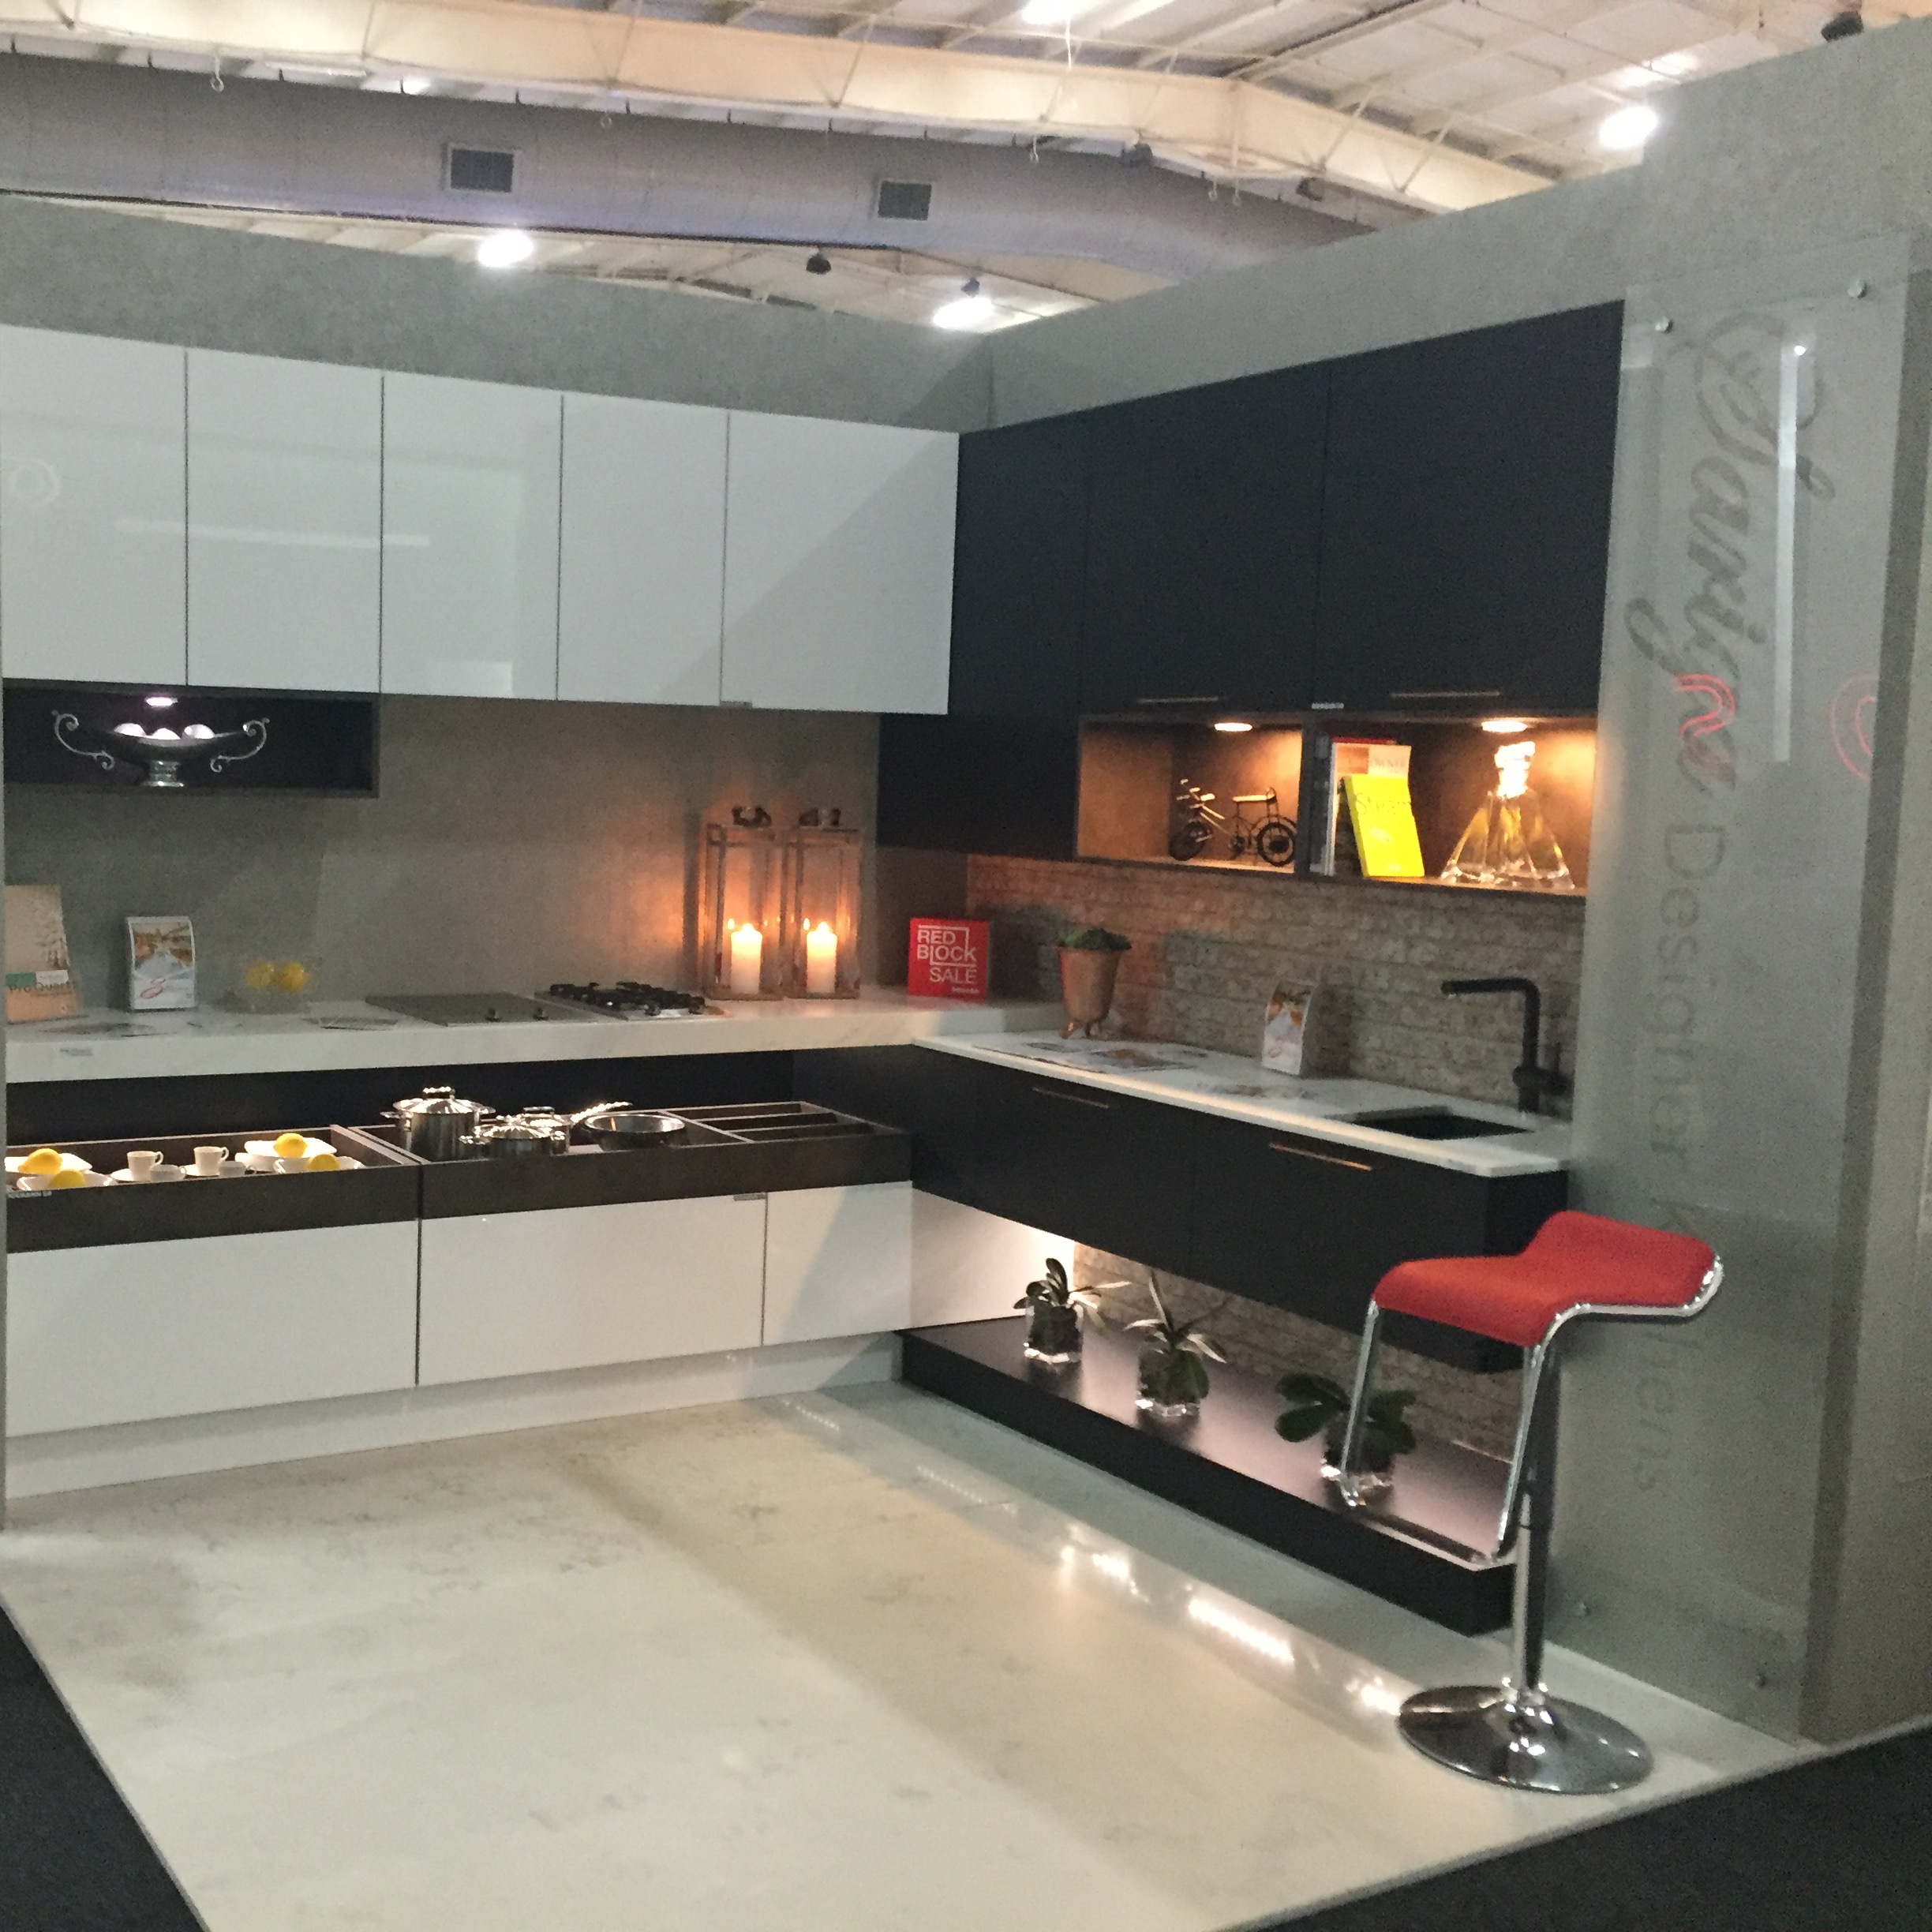 Kitchen Decor Durban: NiemannSA